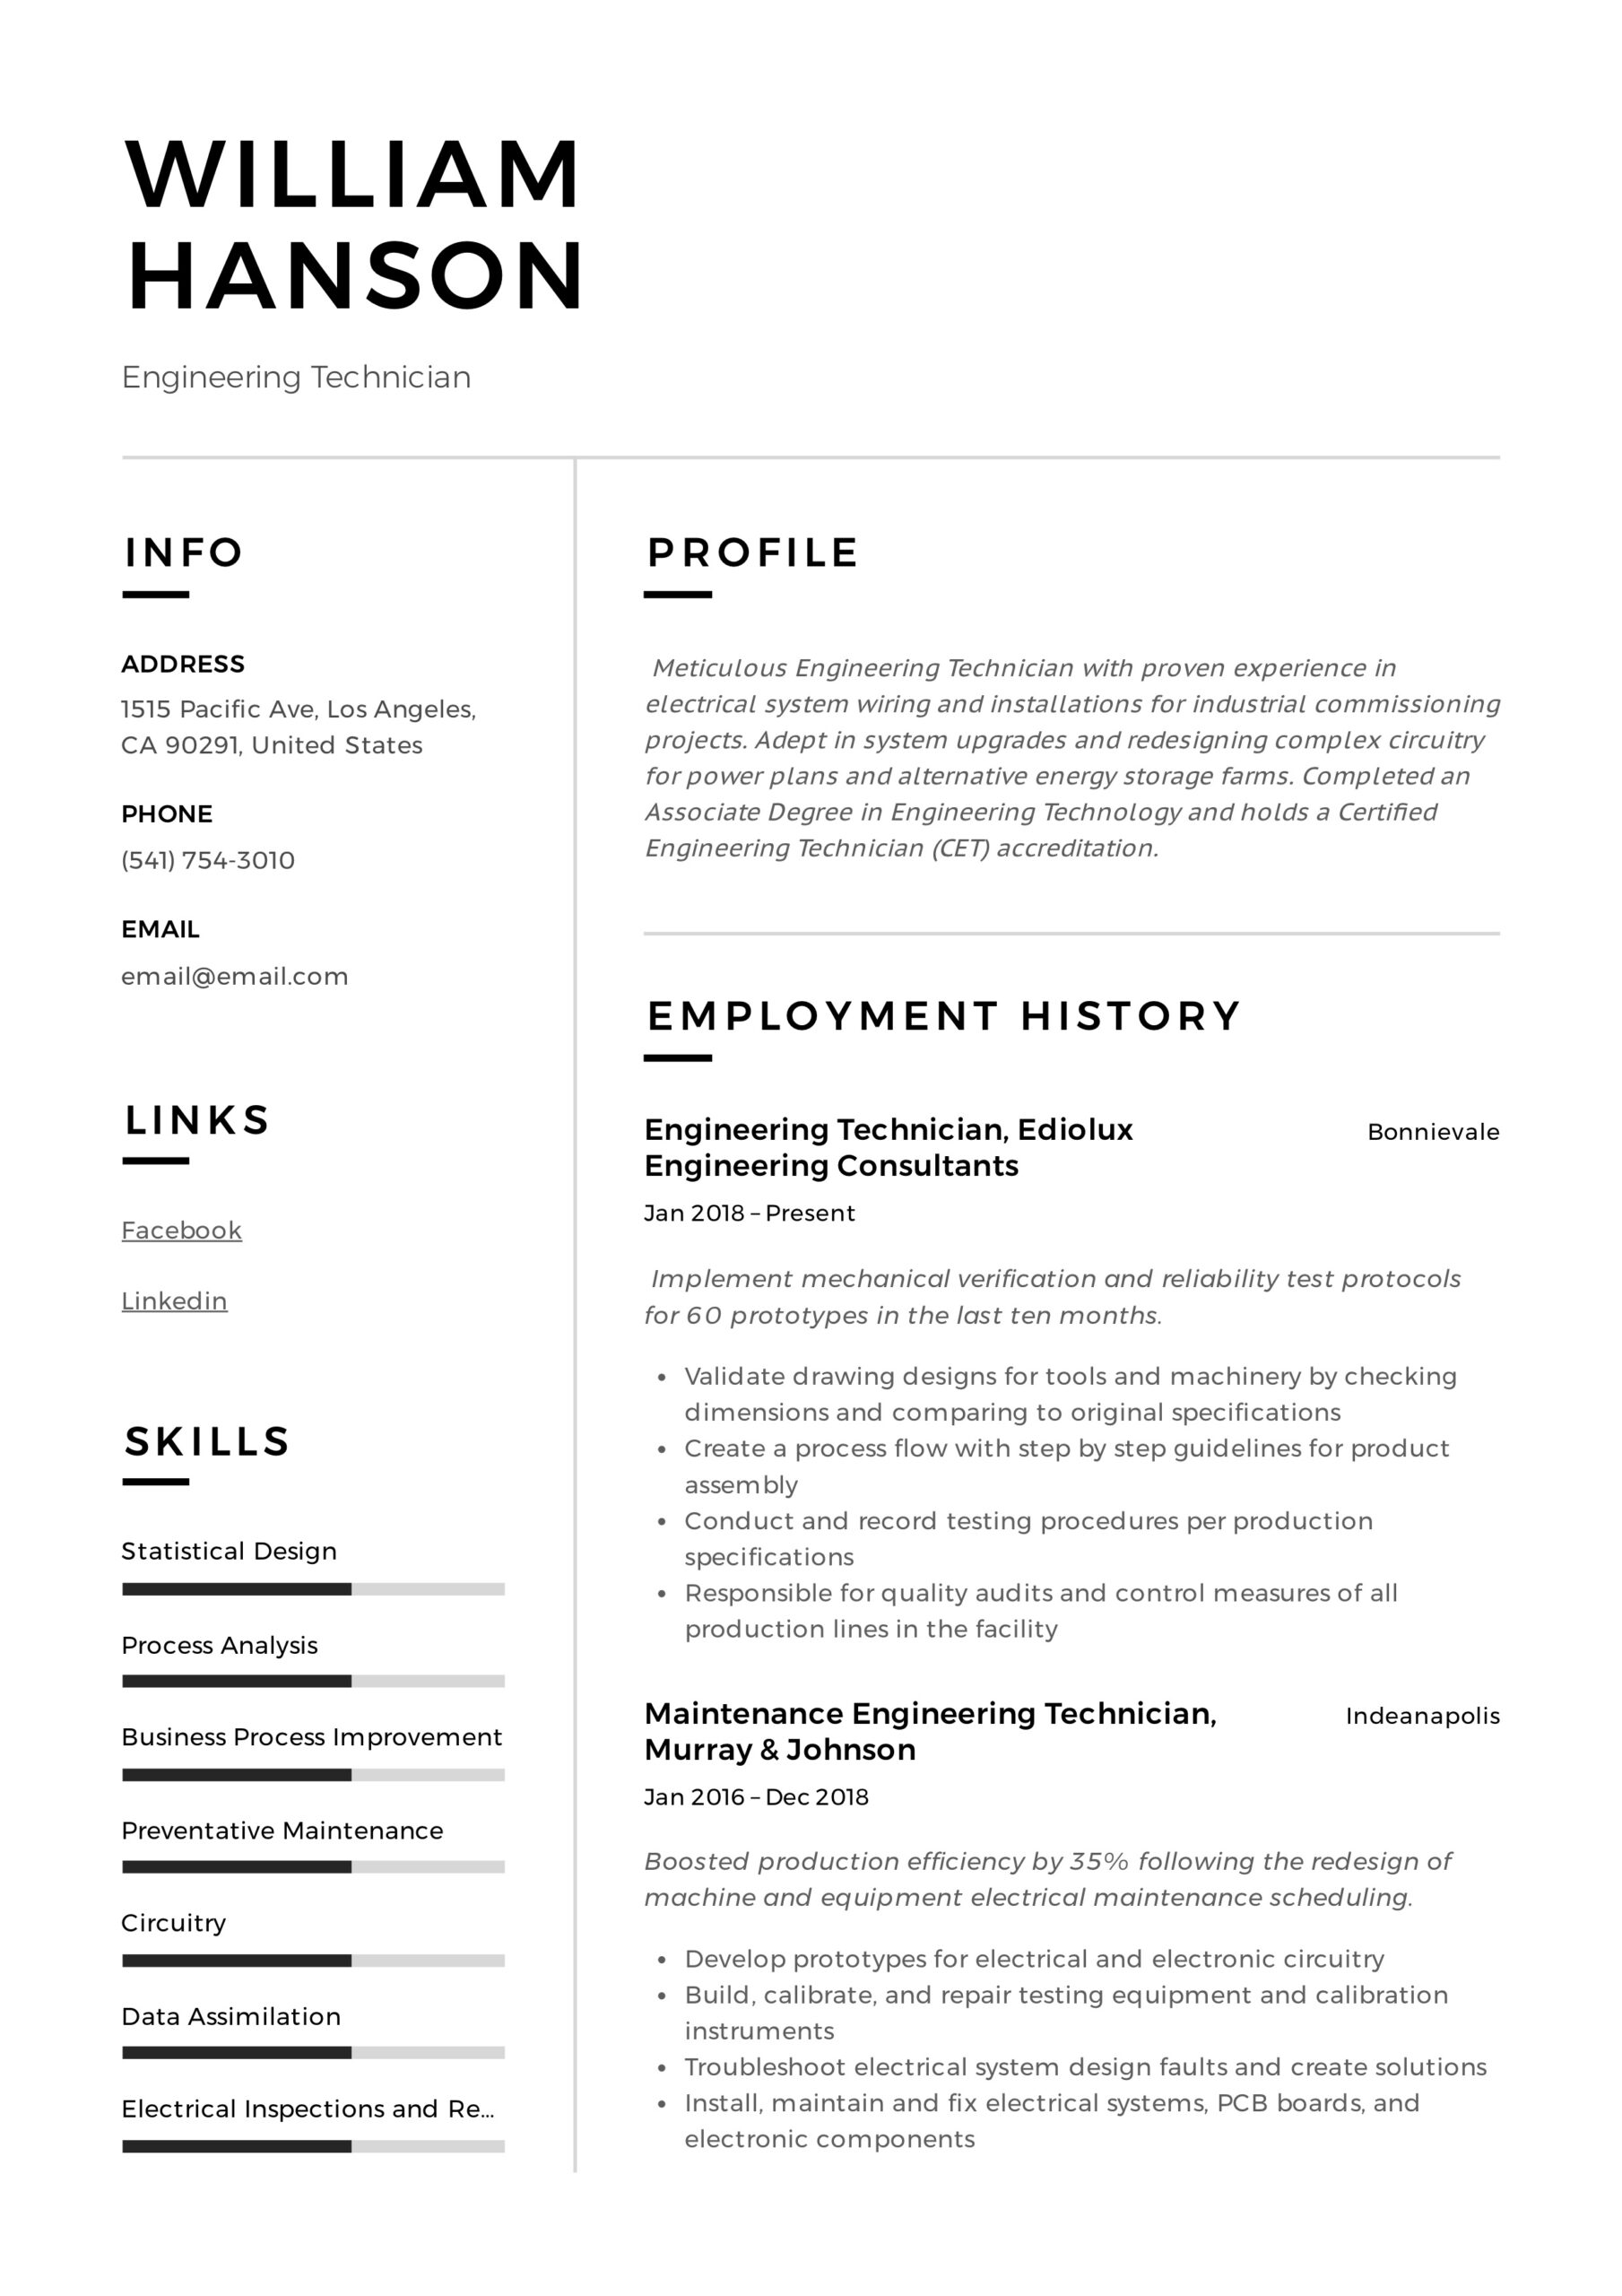 engineering technician resume writing guide templates office examples with linkedin url Resume Office Technician Resume